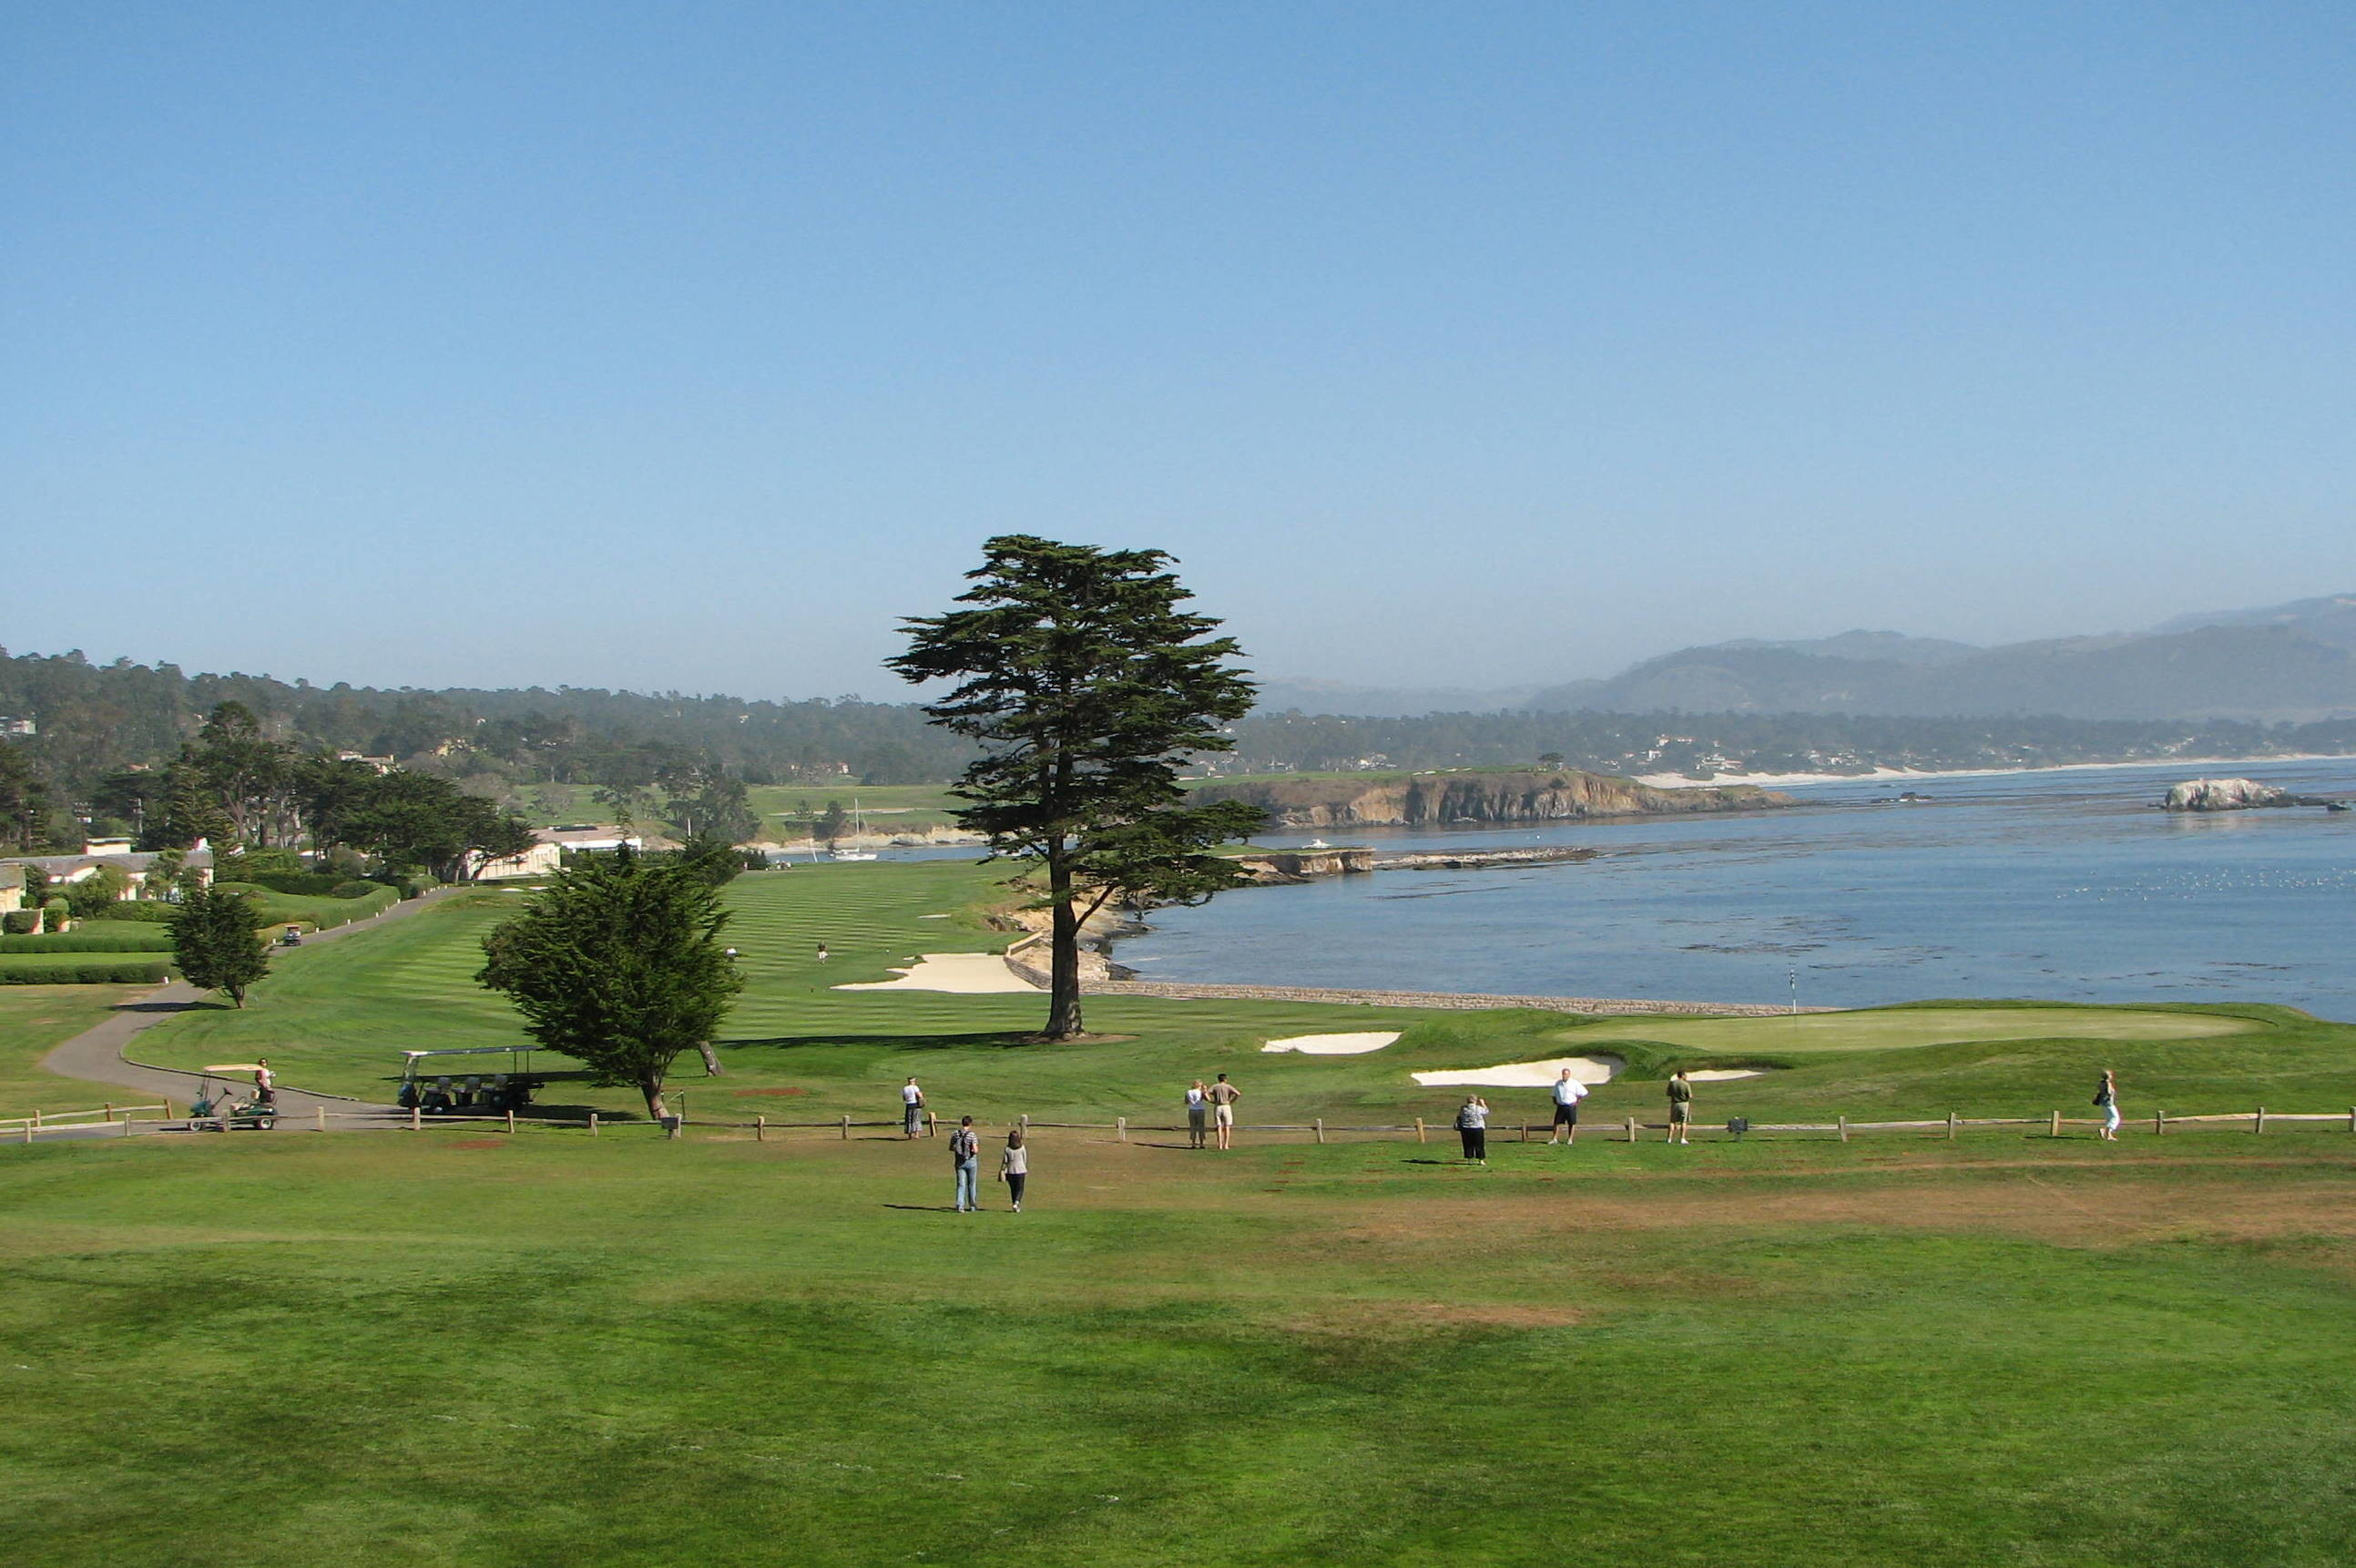 Res: 2587x1722, pebble beach 18th hole hd wallpaper for your desktop background or